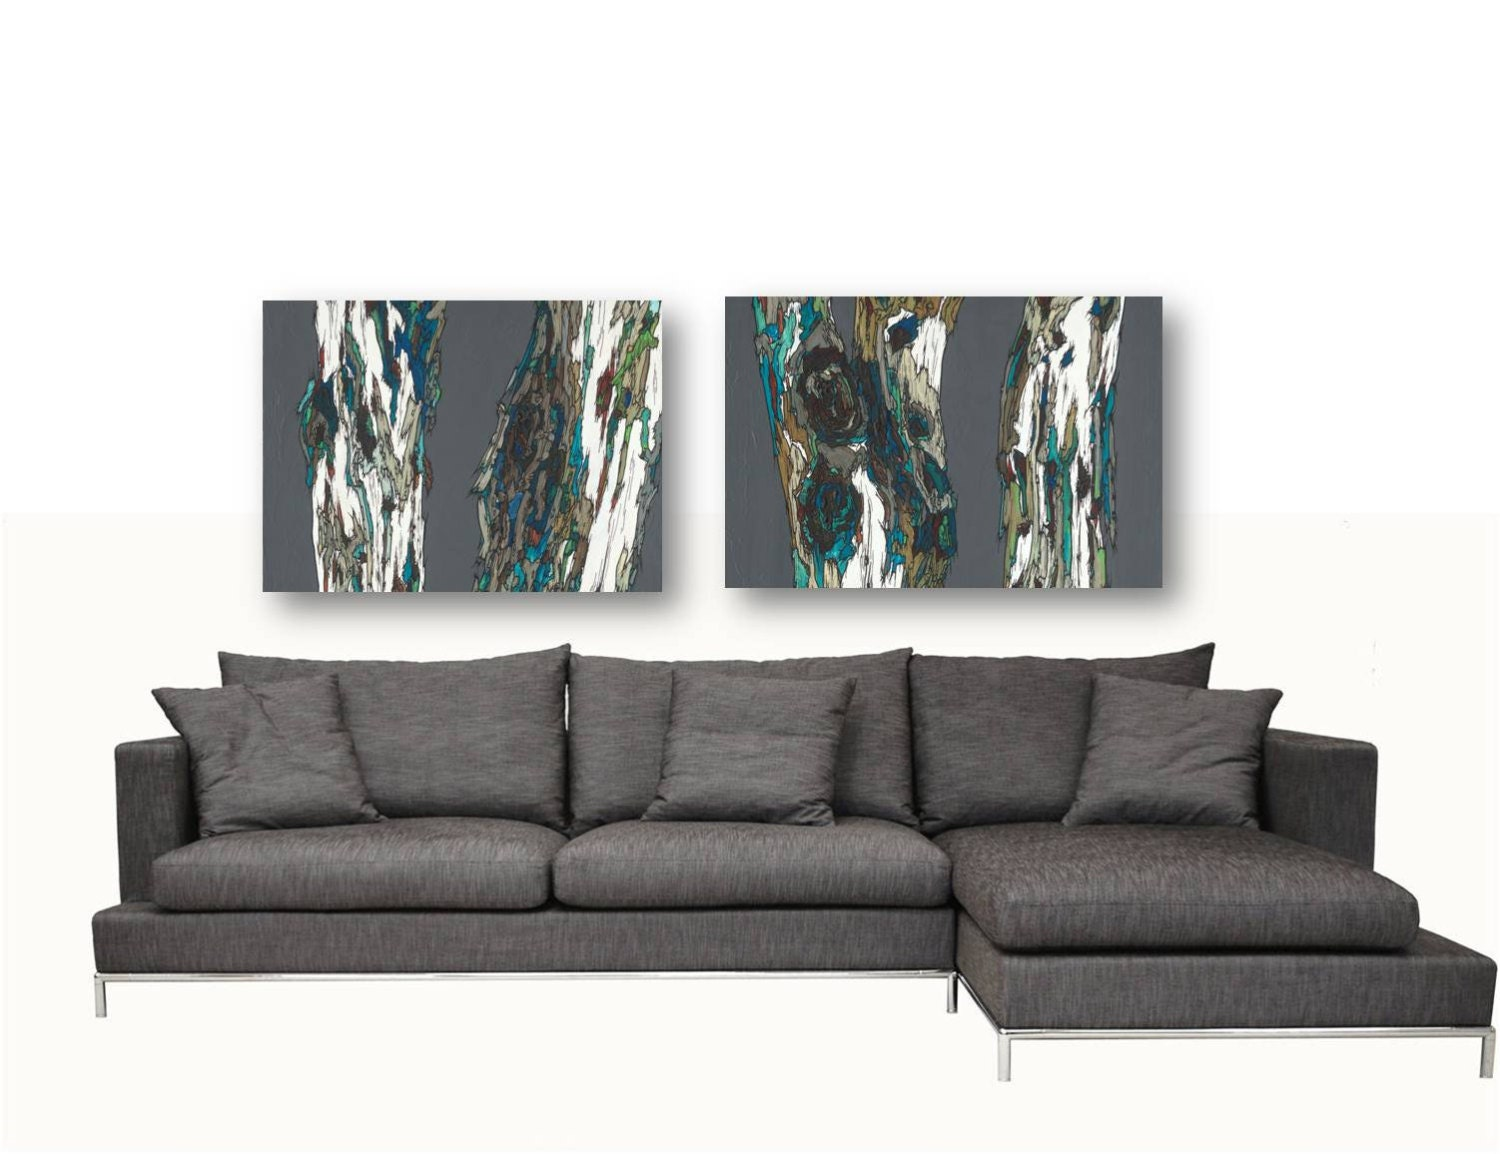 oversized artwork diptych extra large wall art set dining room. Black Bedroom Furniture Sets. Home Design Ideas